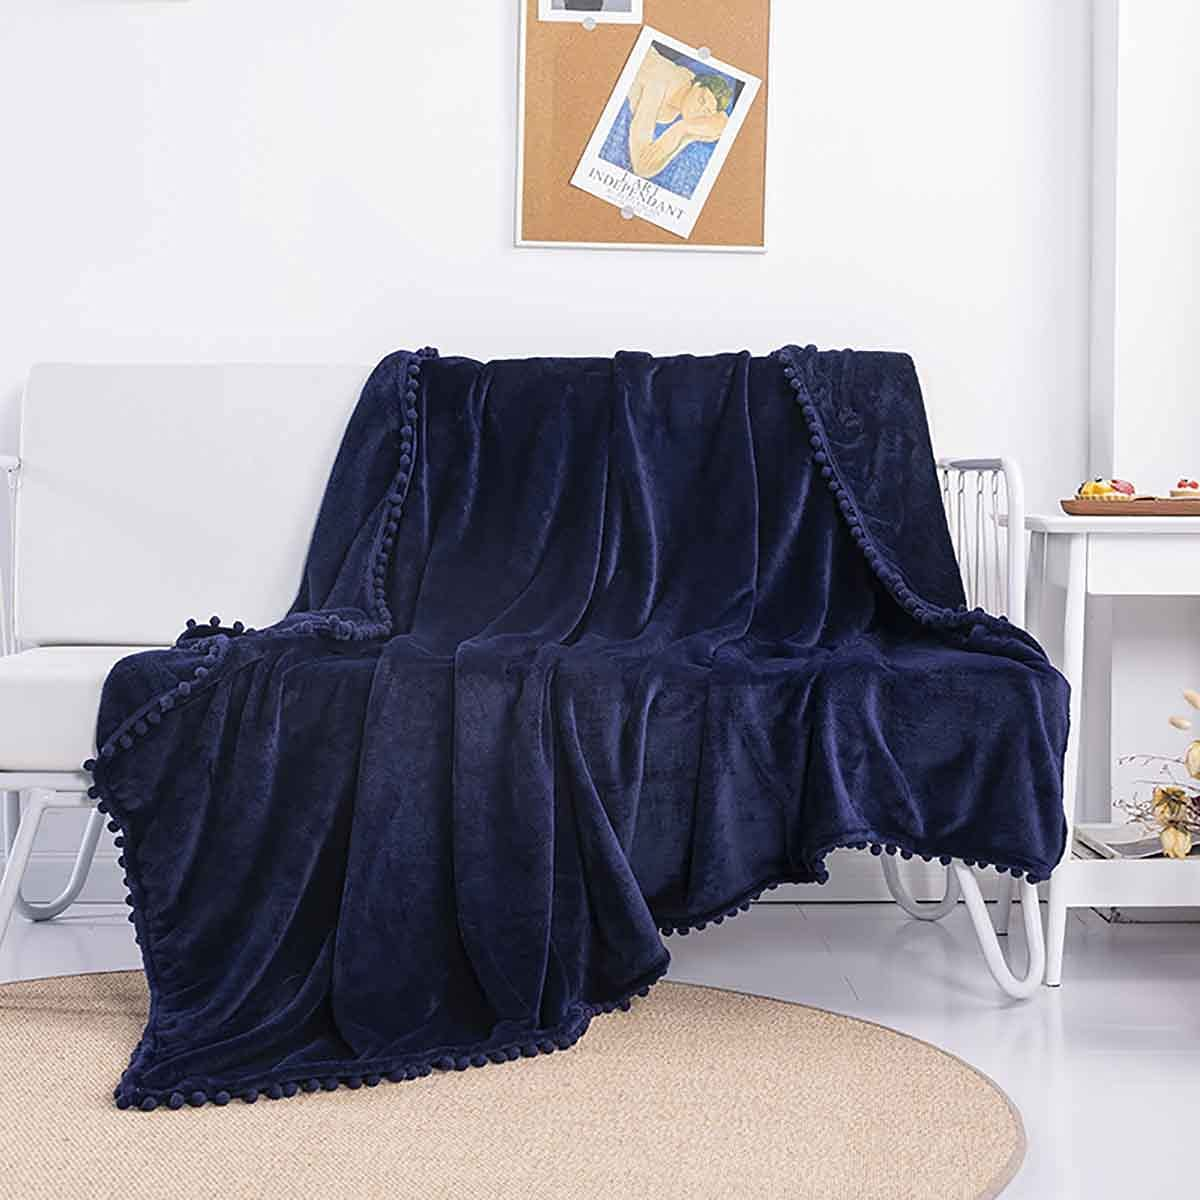 Sooupowly Pom Blanket Throw Twin Coz Max 85% OFF Lightweight Fringe Size Max 45% OFF